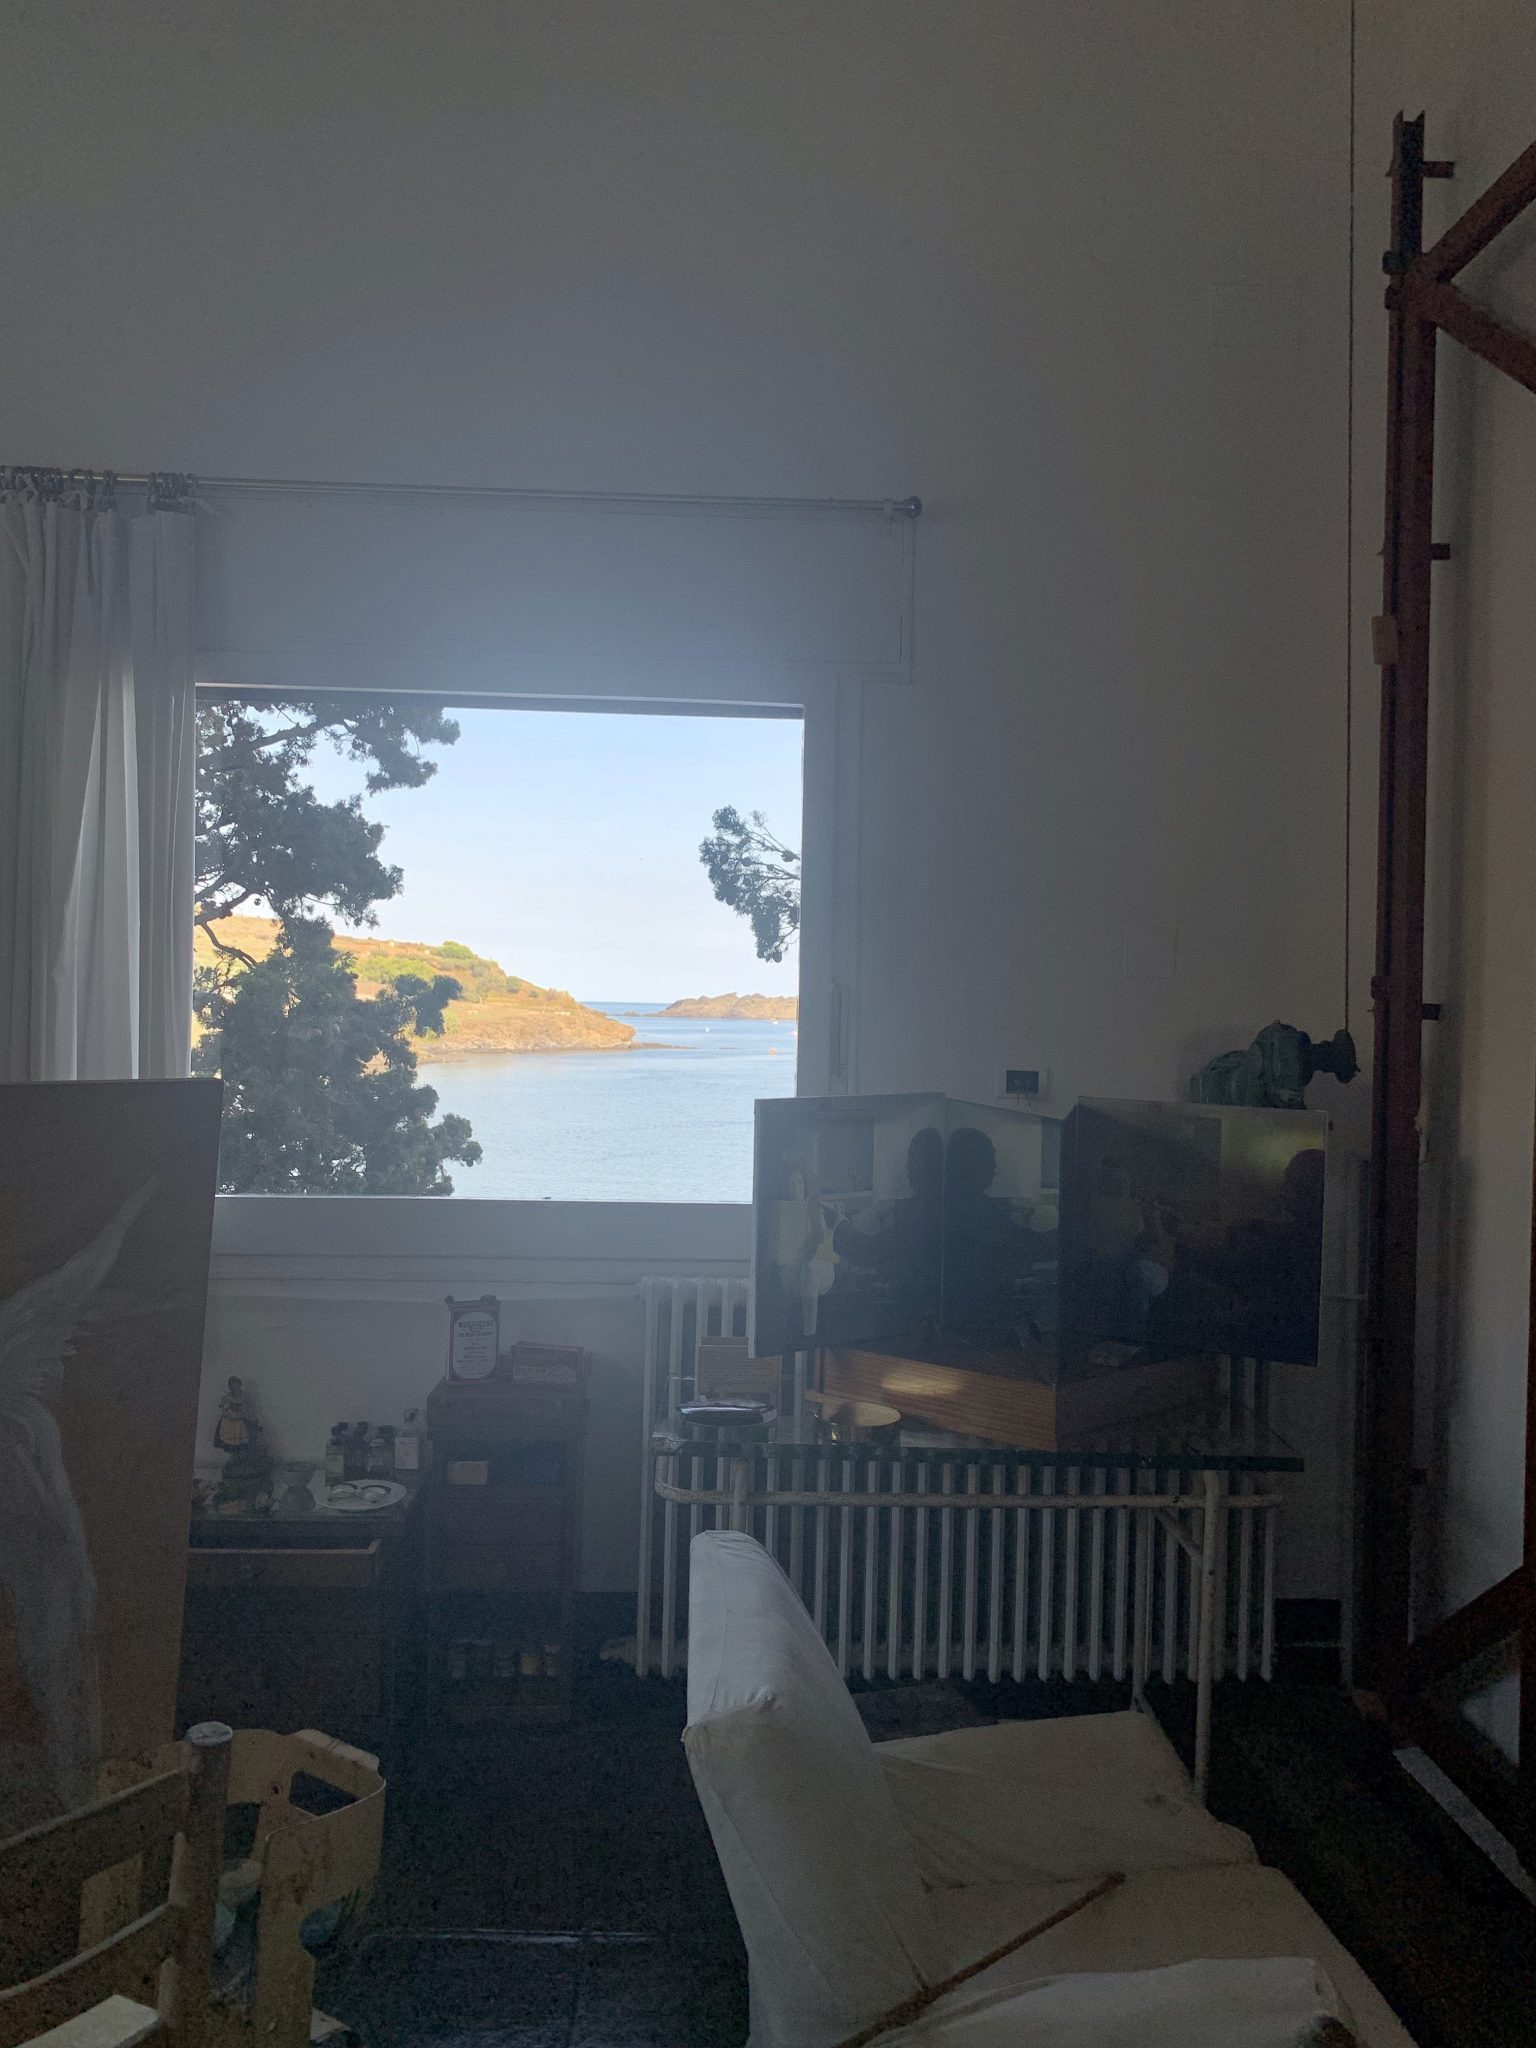 View out the window in Dali's art studio in Portlligat.